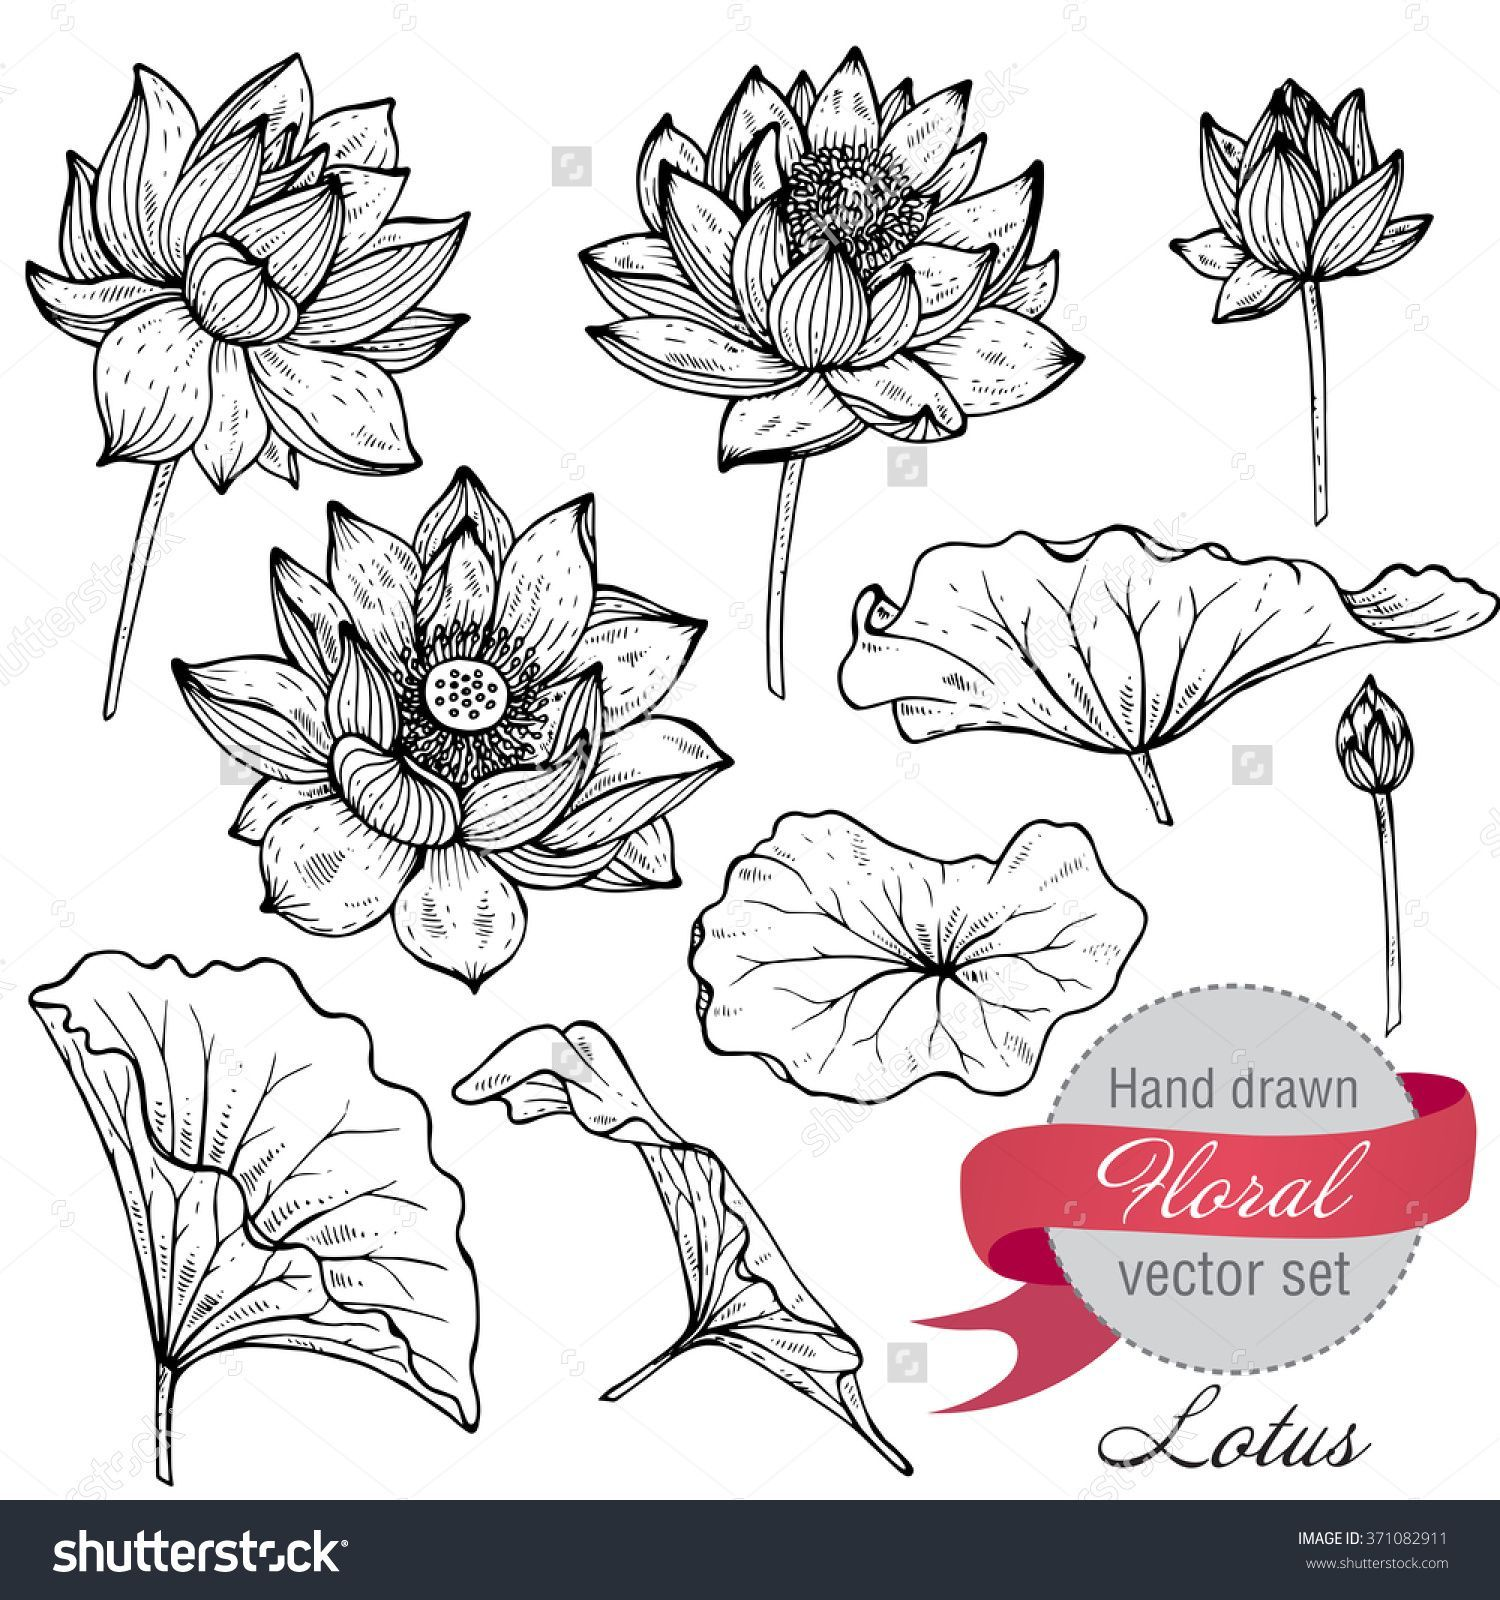 Vector Set Of Hand Drawn Lotus Flowers And Leaves. Sketch